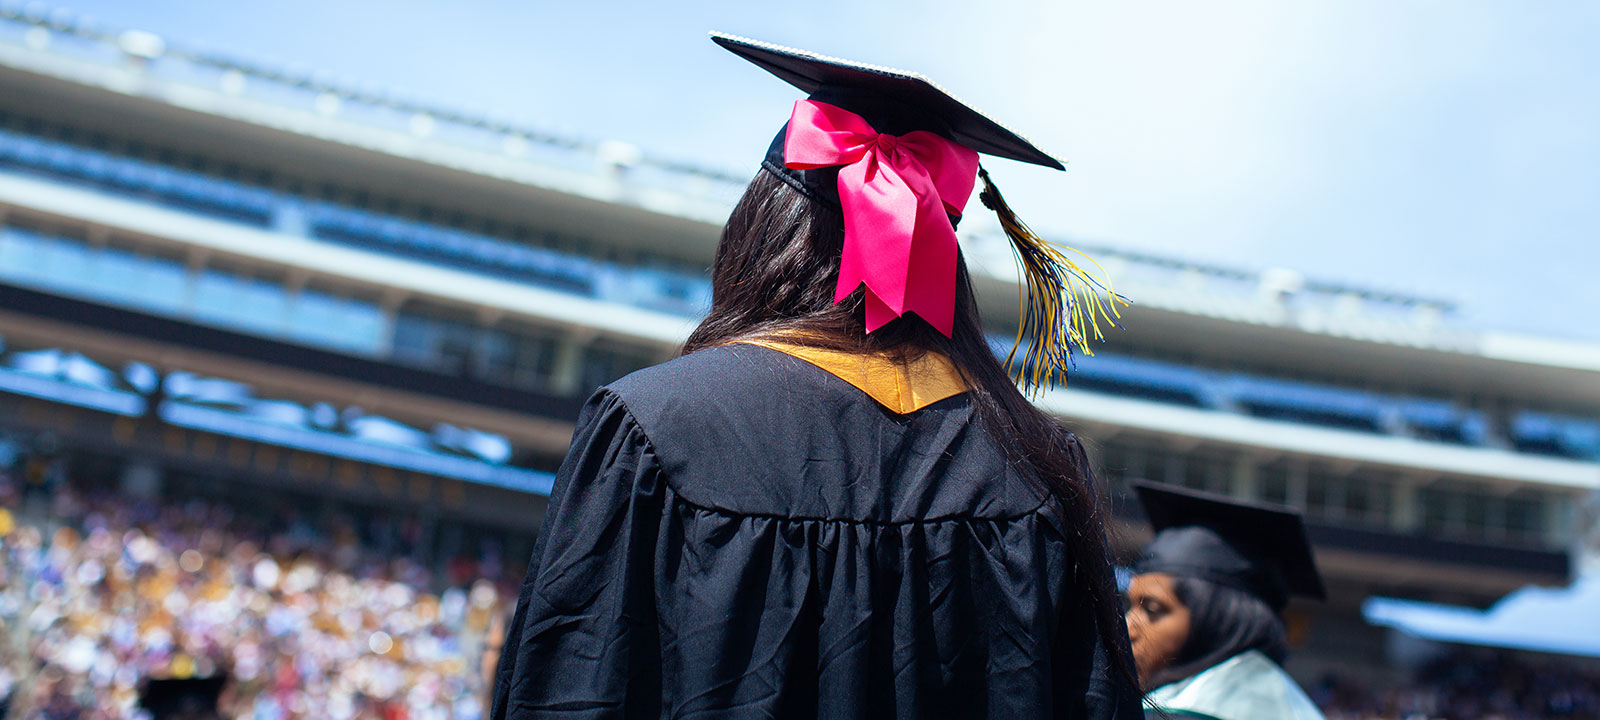 View of student in commencement cap and gown